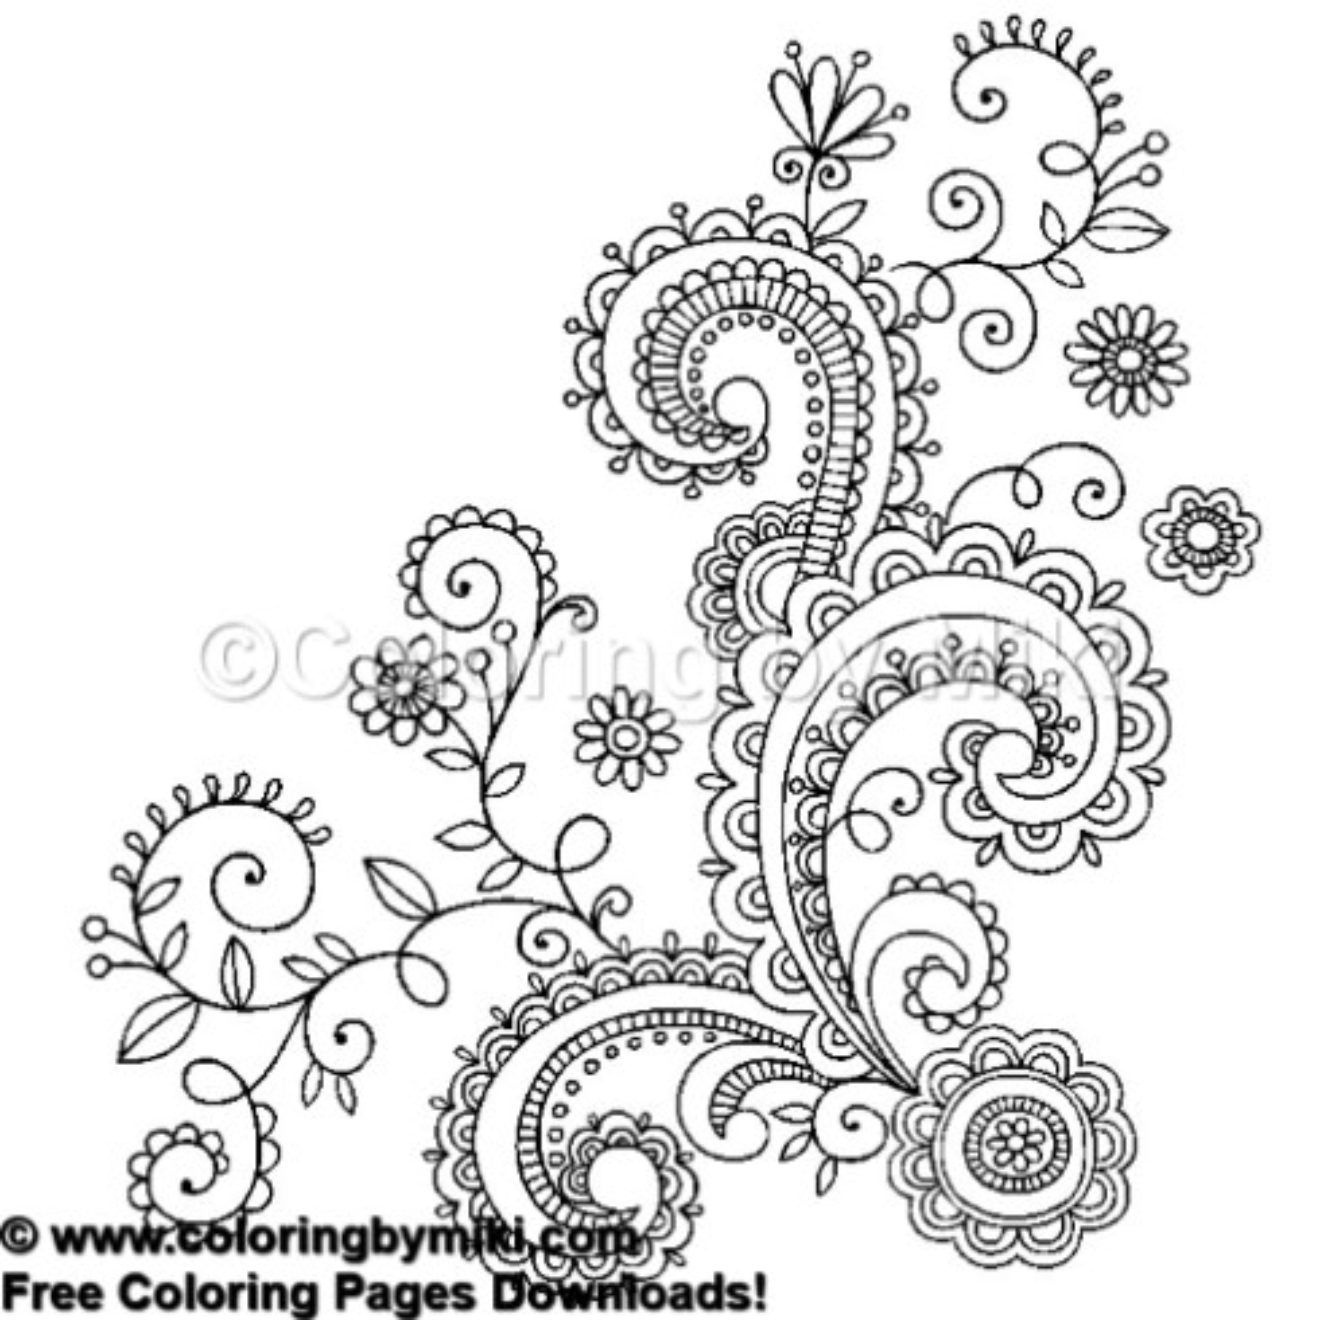 Henna Tattoo Design Coloring Page #653 | Boho / Tribal - Free - Free Printable Henna Tattoo Designs